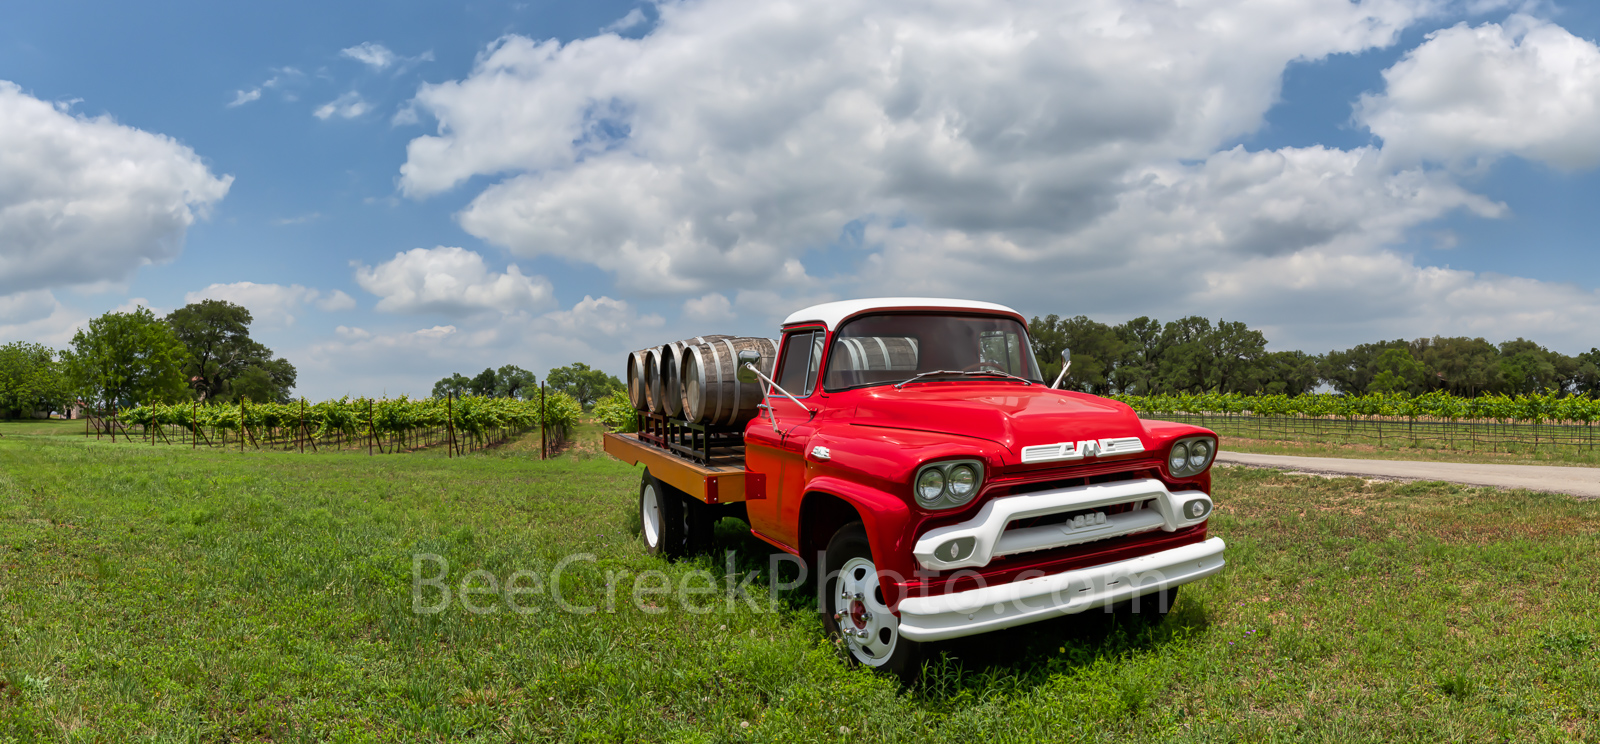 Hill country winery, bright red truck, wine, barrels, grapes, grape vines, pano, panorama, clouds, blue sky, texas hill country, 1851, truck,, photo